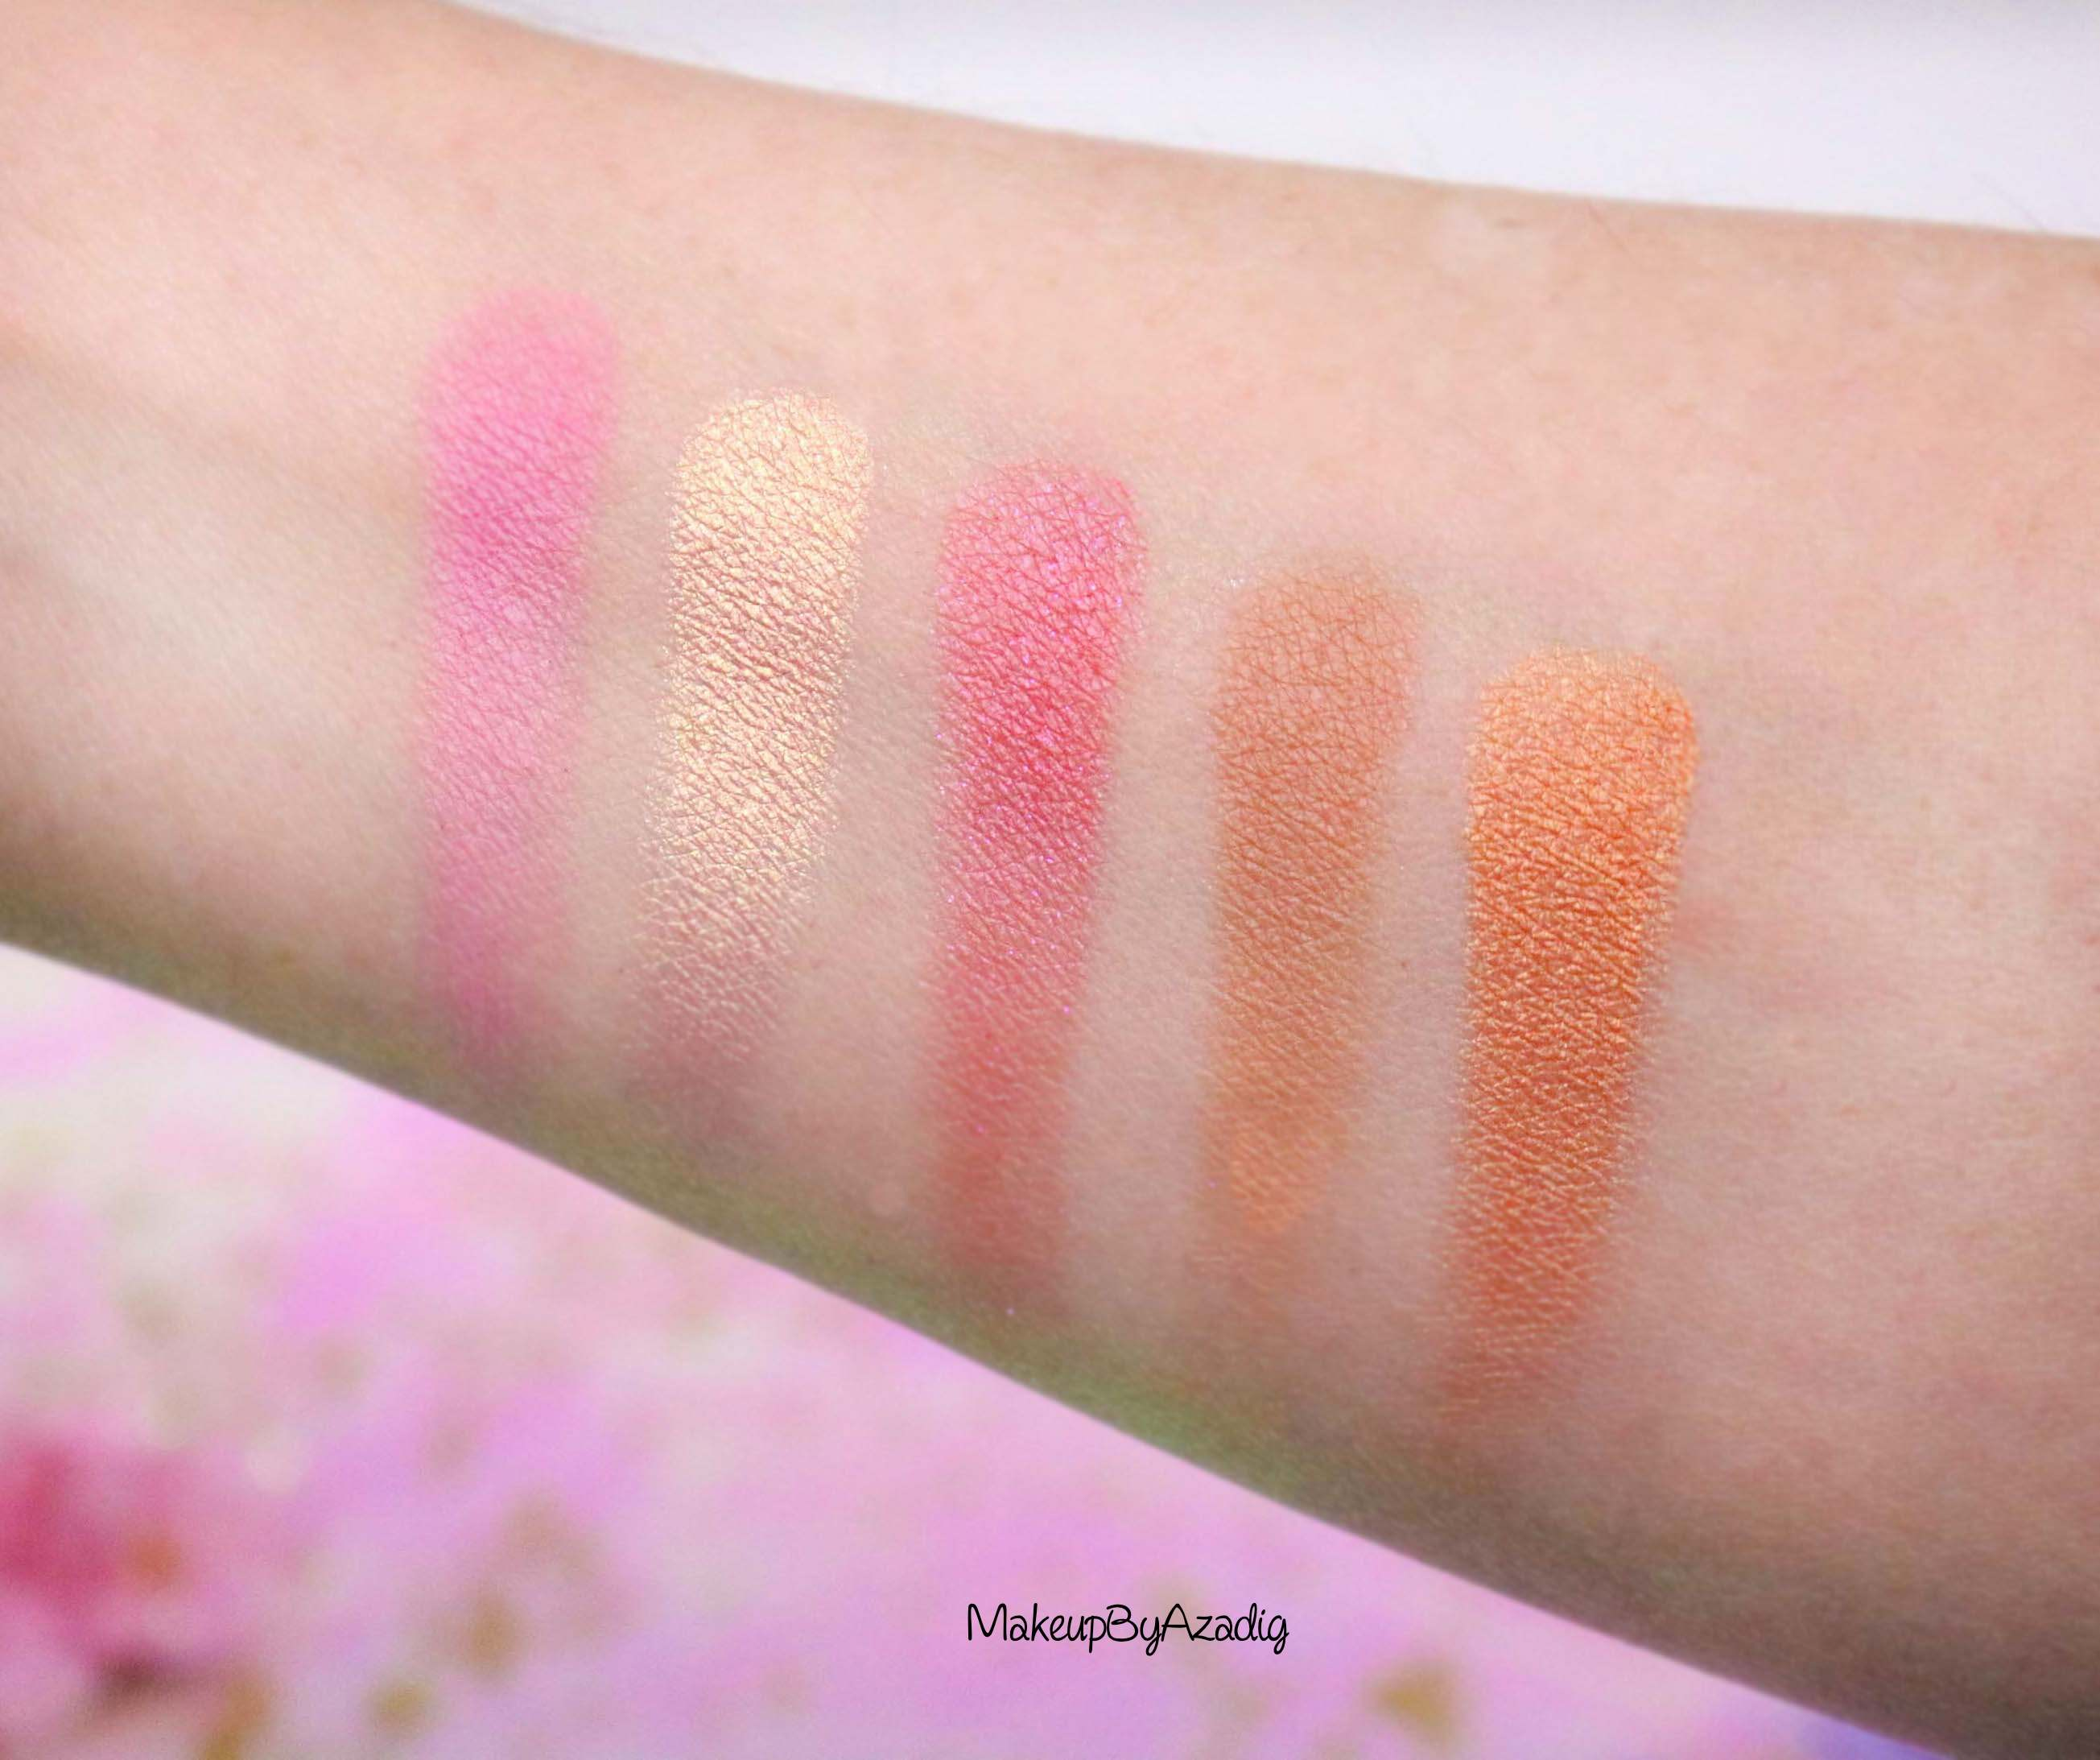 revue-palette-lifes-a-festival-too-faced-france-sephora-avis-prix-revue-makeupbyazadig-collection-licorne-colors